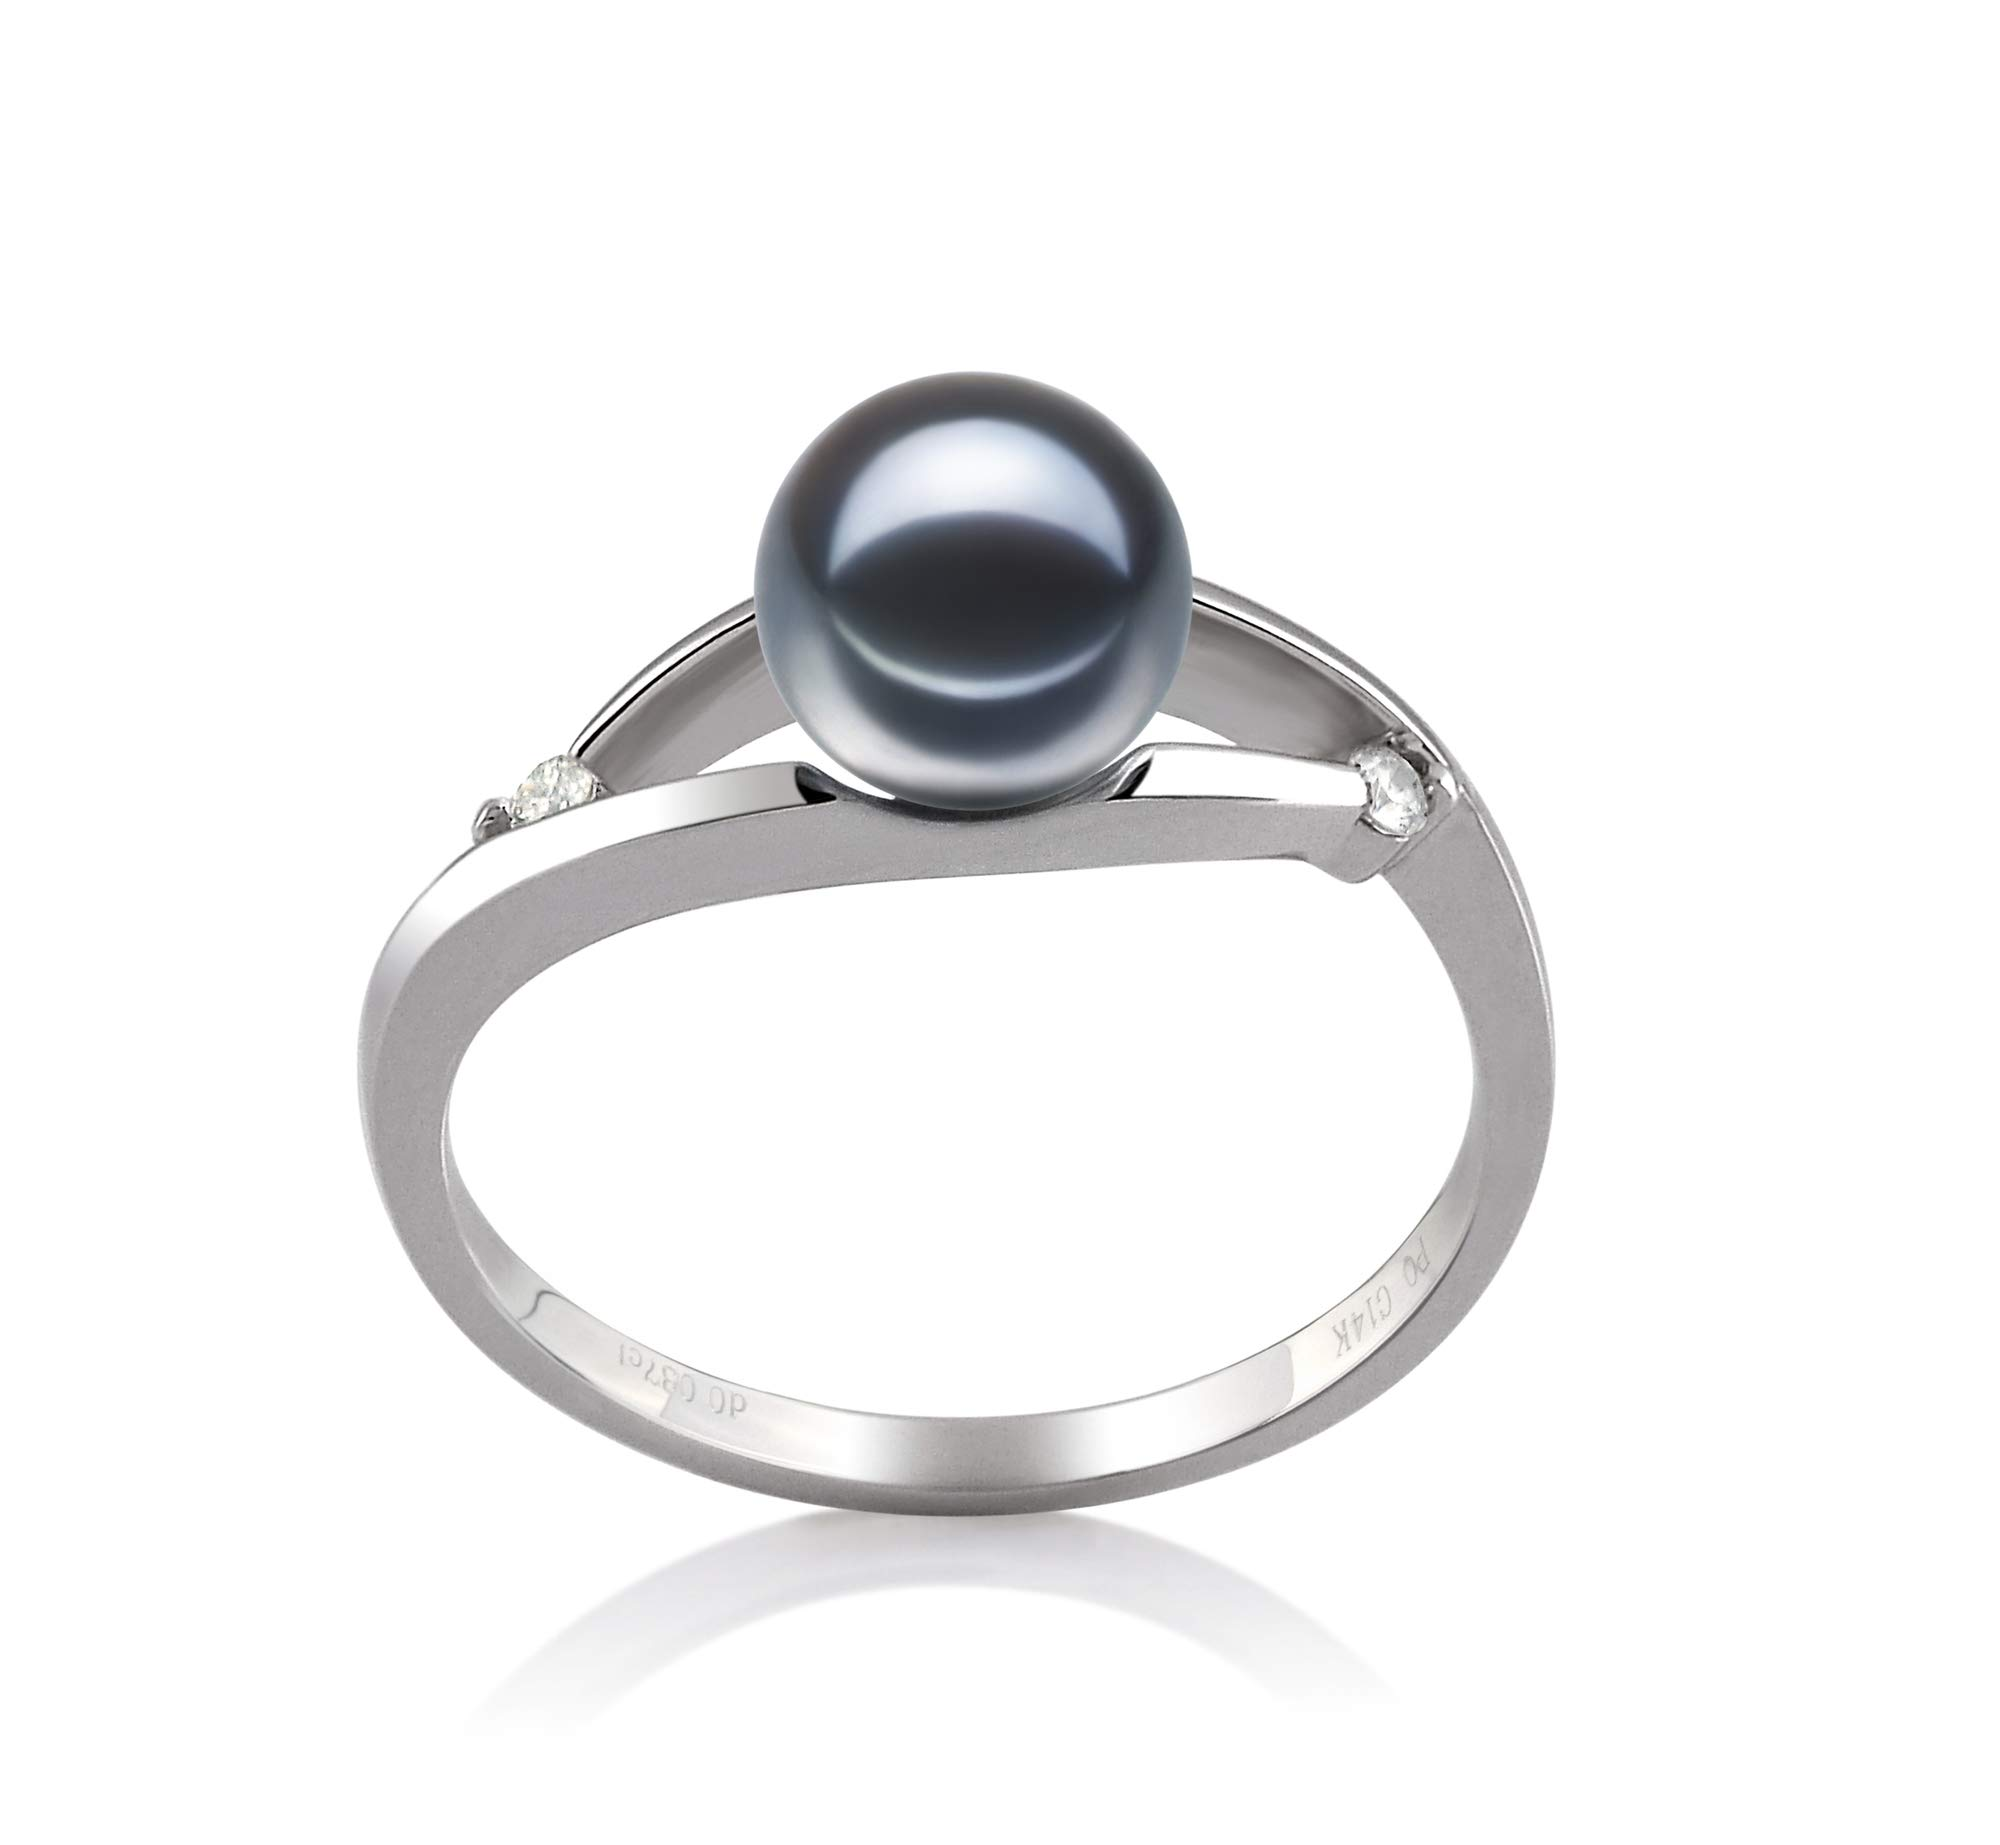 Tanya Black 6-7mm AAAA Quality Freshwater 14K White Gold Cultured Pearl Ring For Women - Size-7